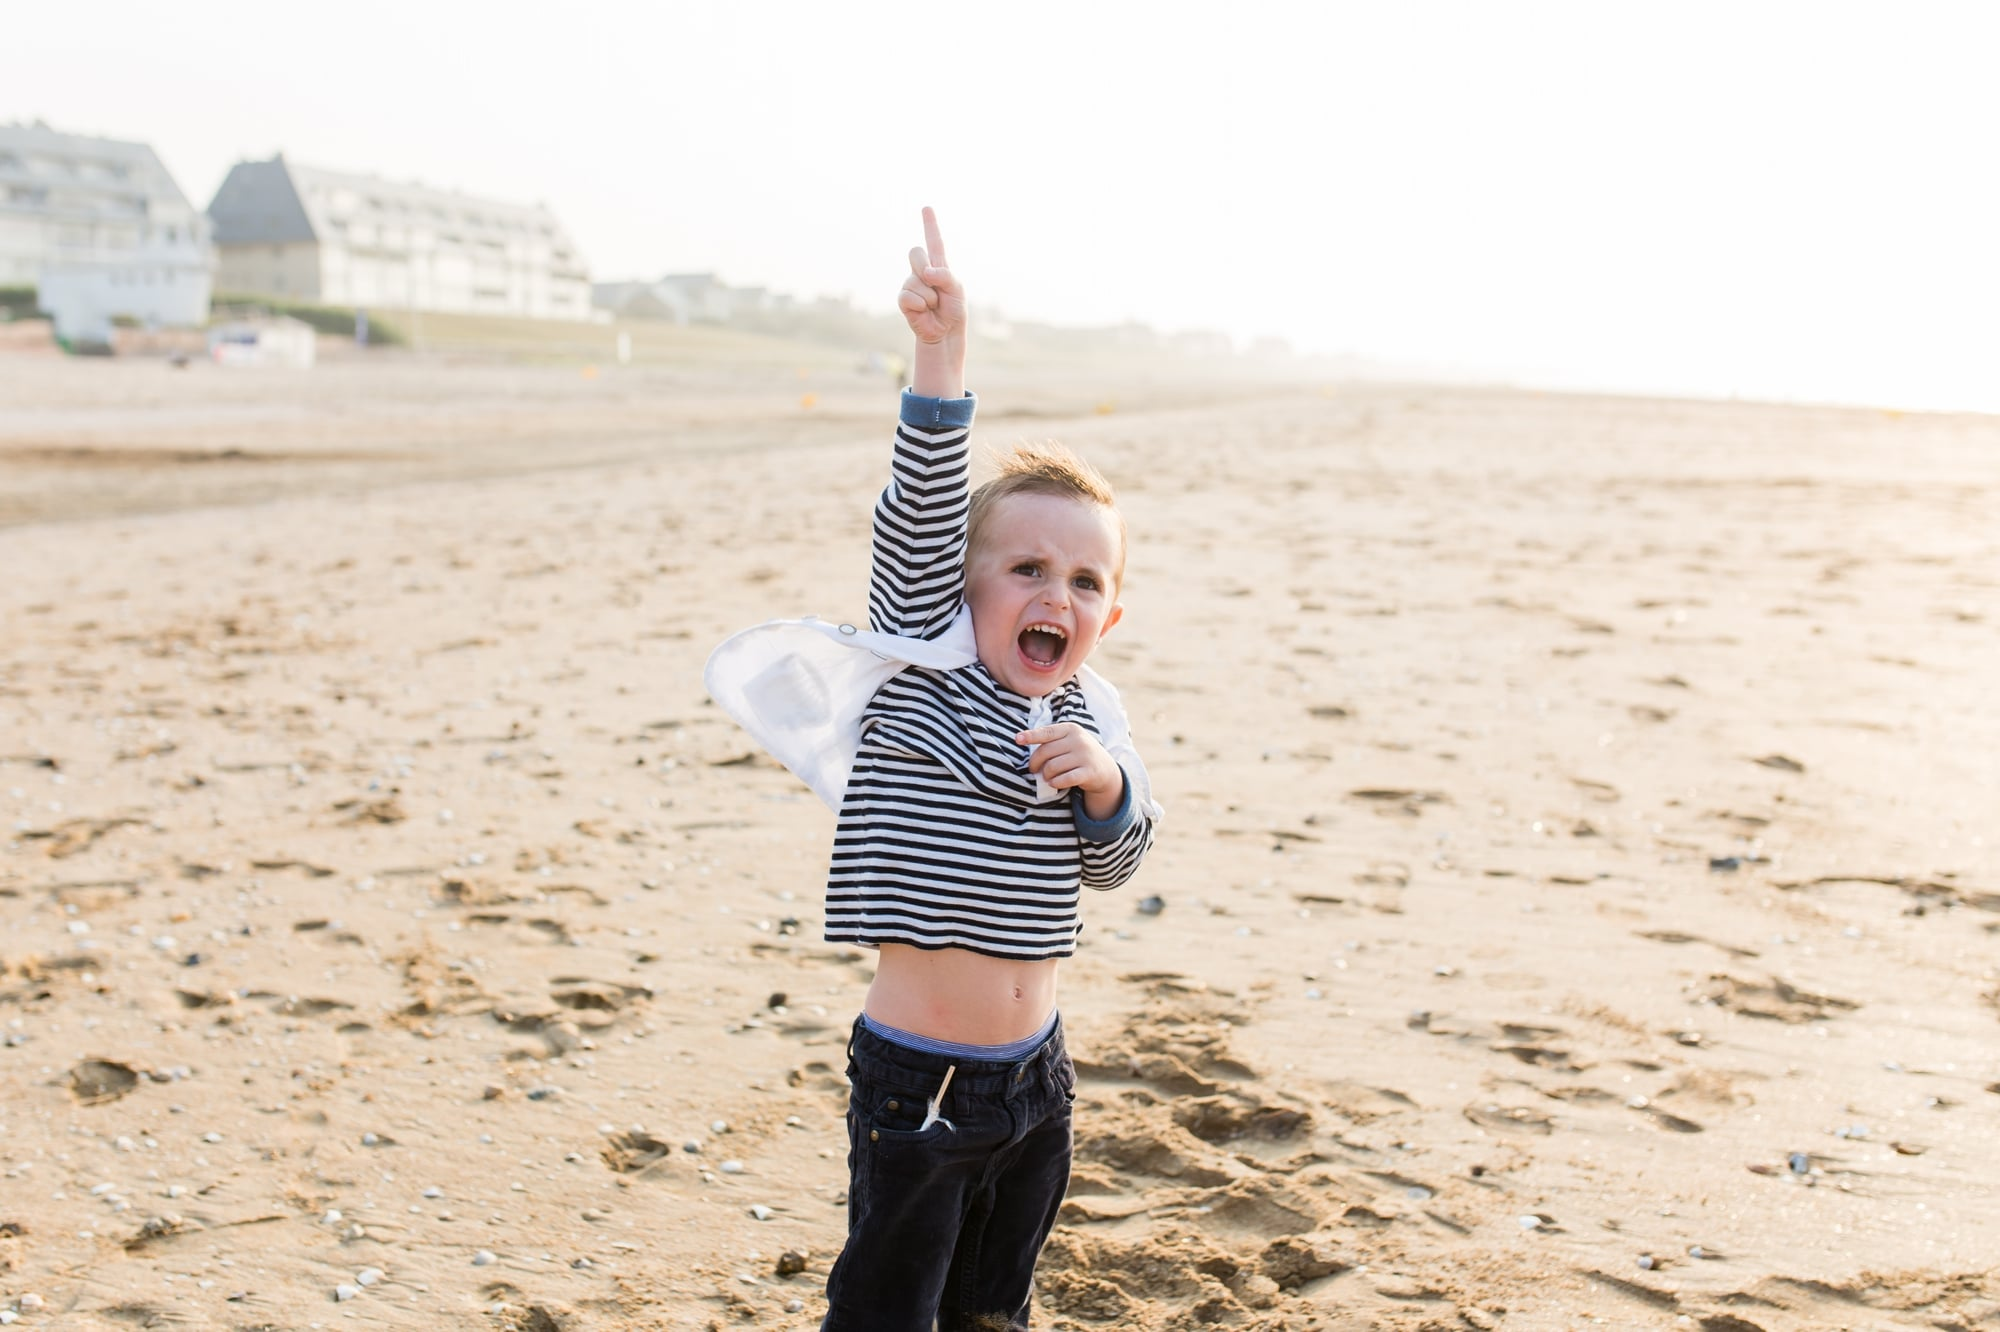 séance famille cabourg basse normandie photographe shooting lifestyle-9